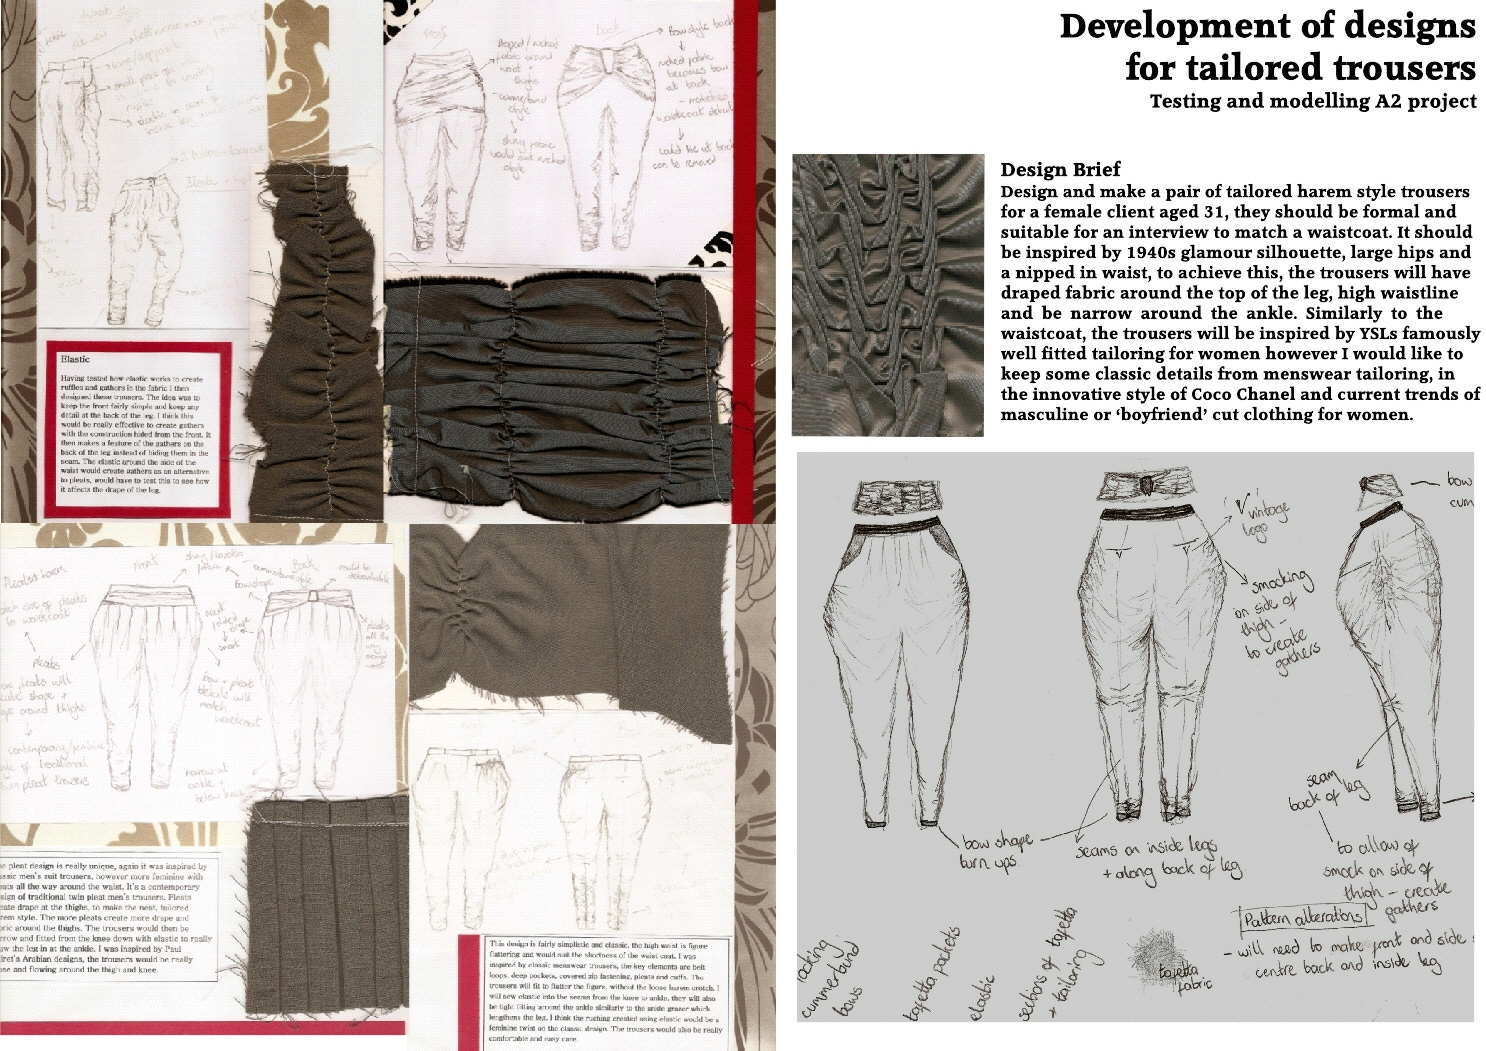 Fashion Design most useful business degrees